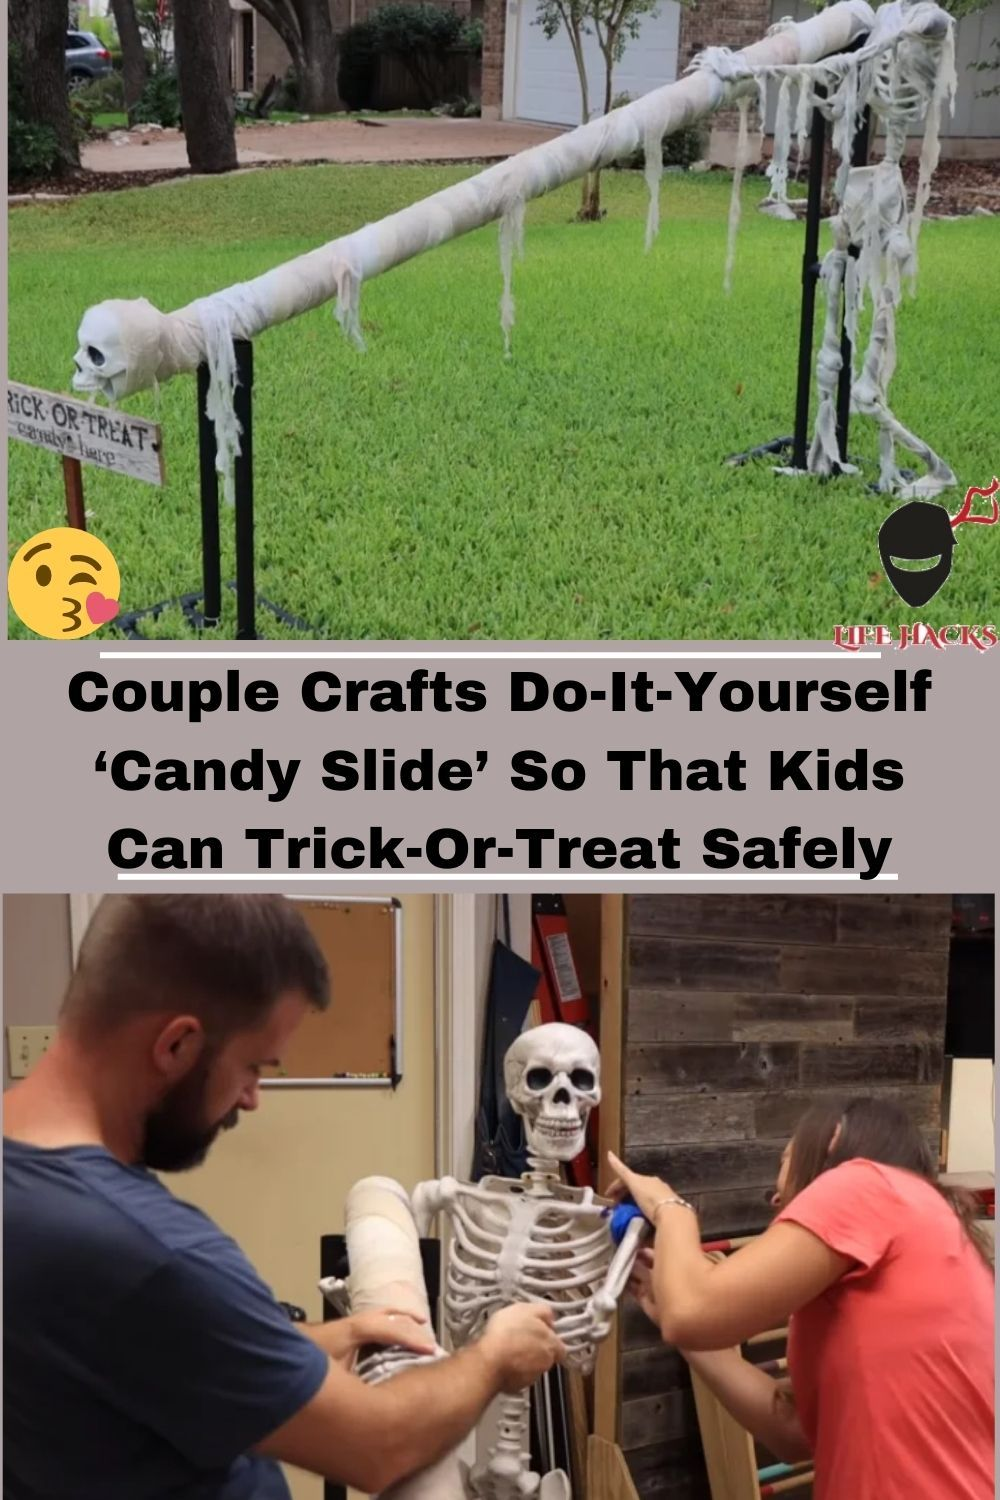 Couple crafts doityourself 'candy slide' so that kids